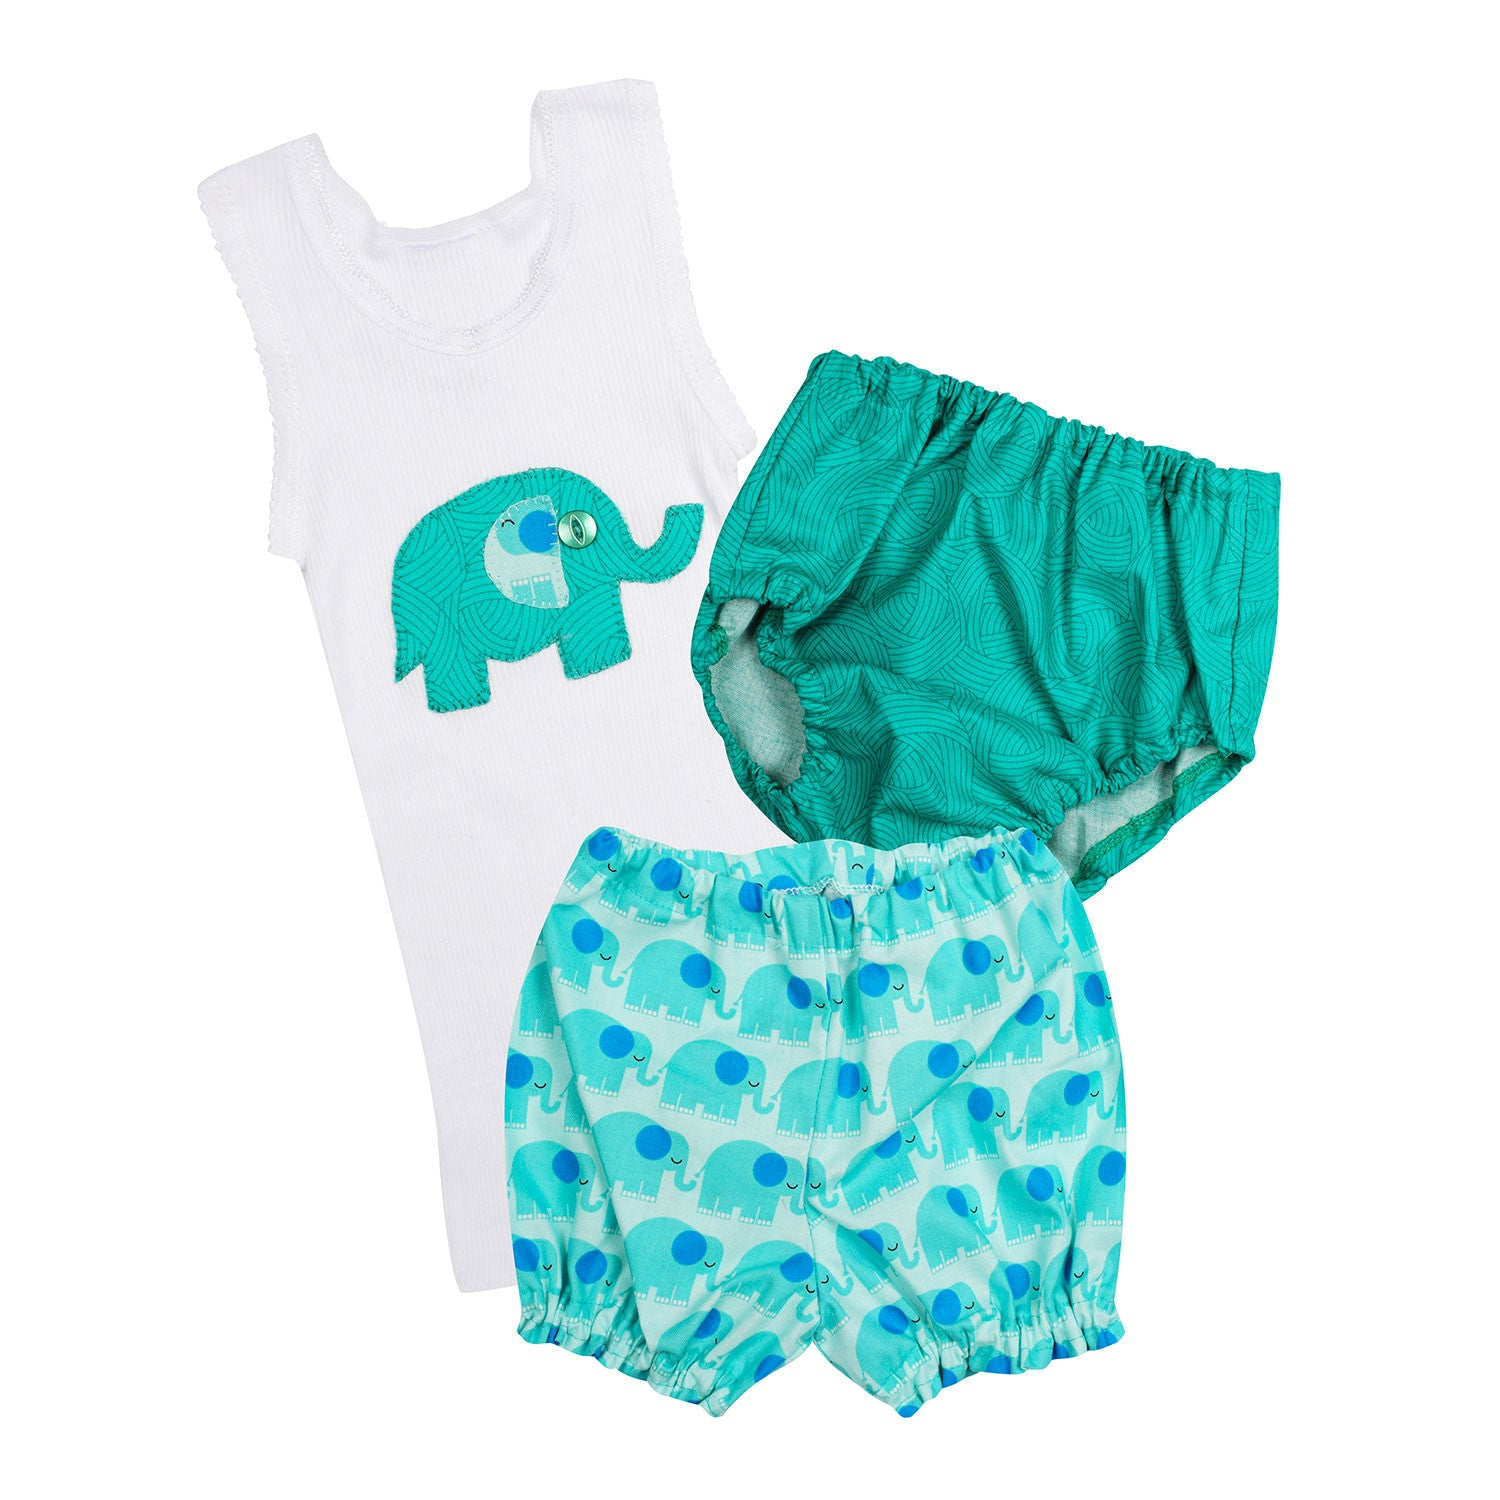 Baby Elephant 3 piece Set - Singlet, Bloomer and Diaper Cover